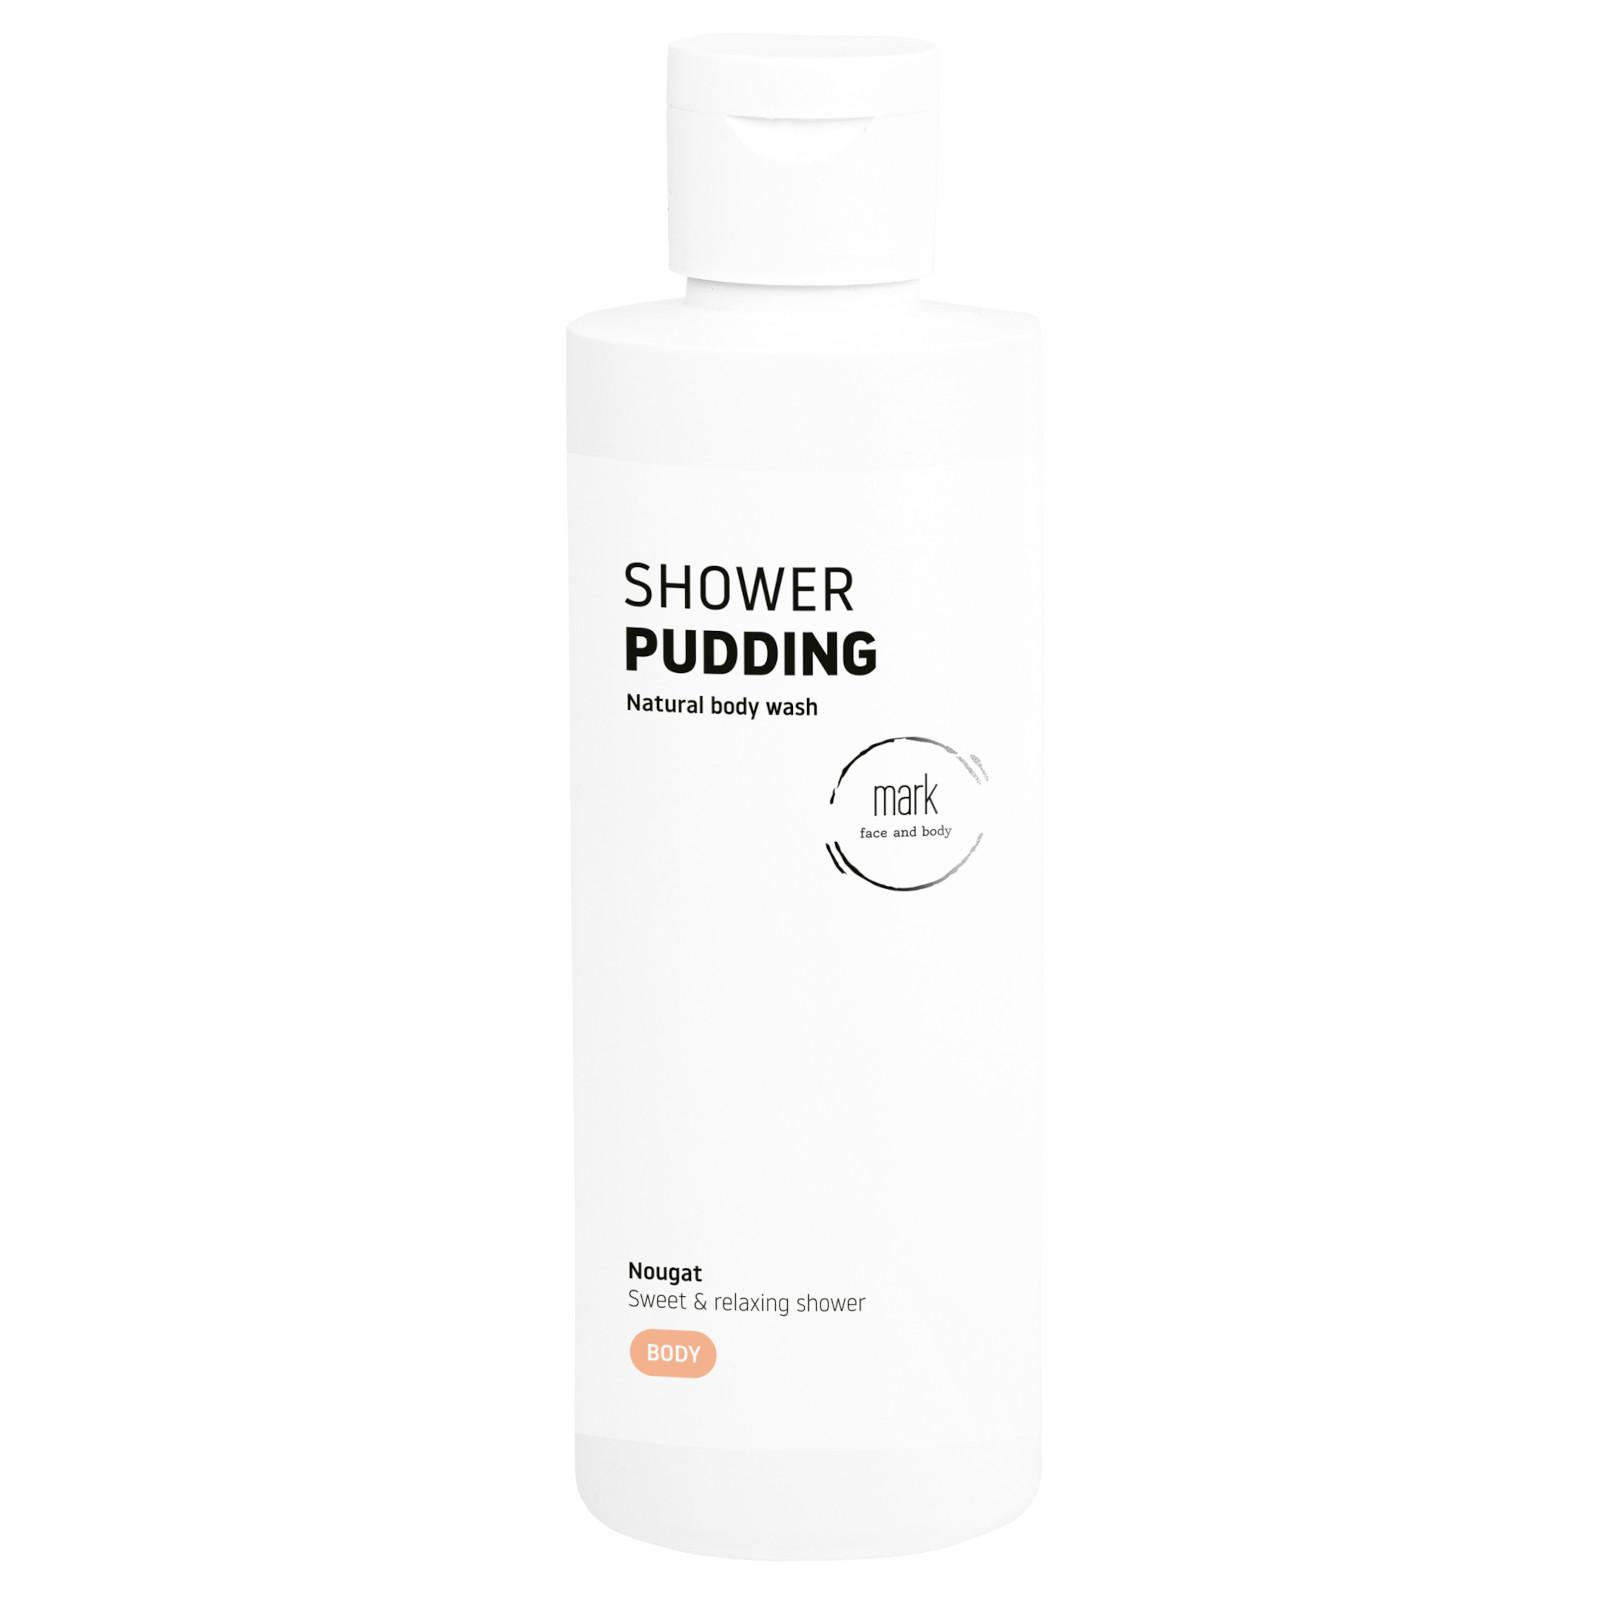 MARK face and body Sprchový puding MARK Nougat 200 ml